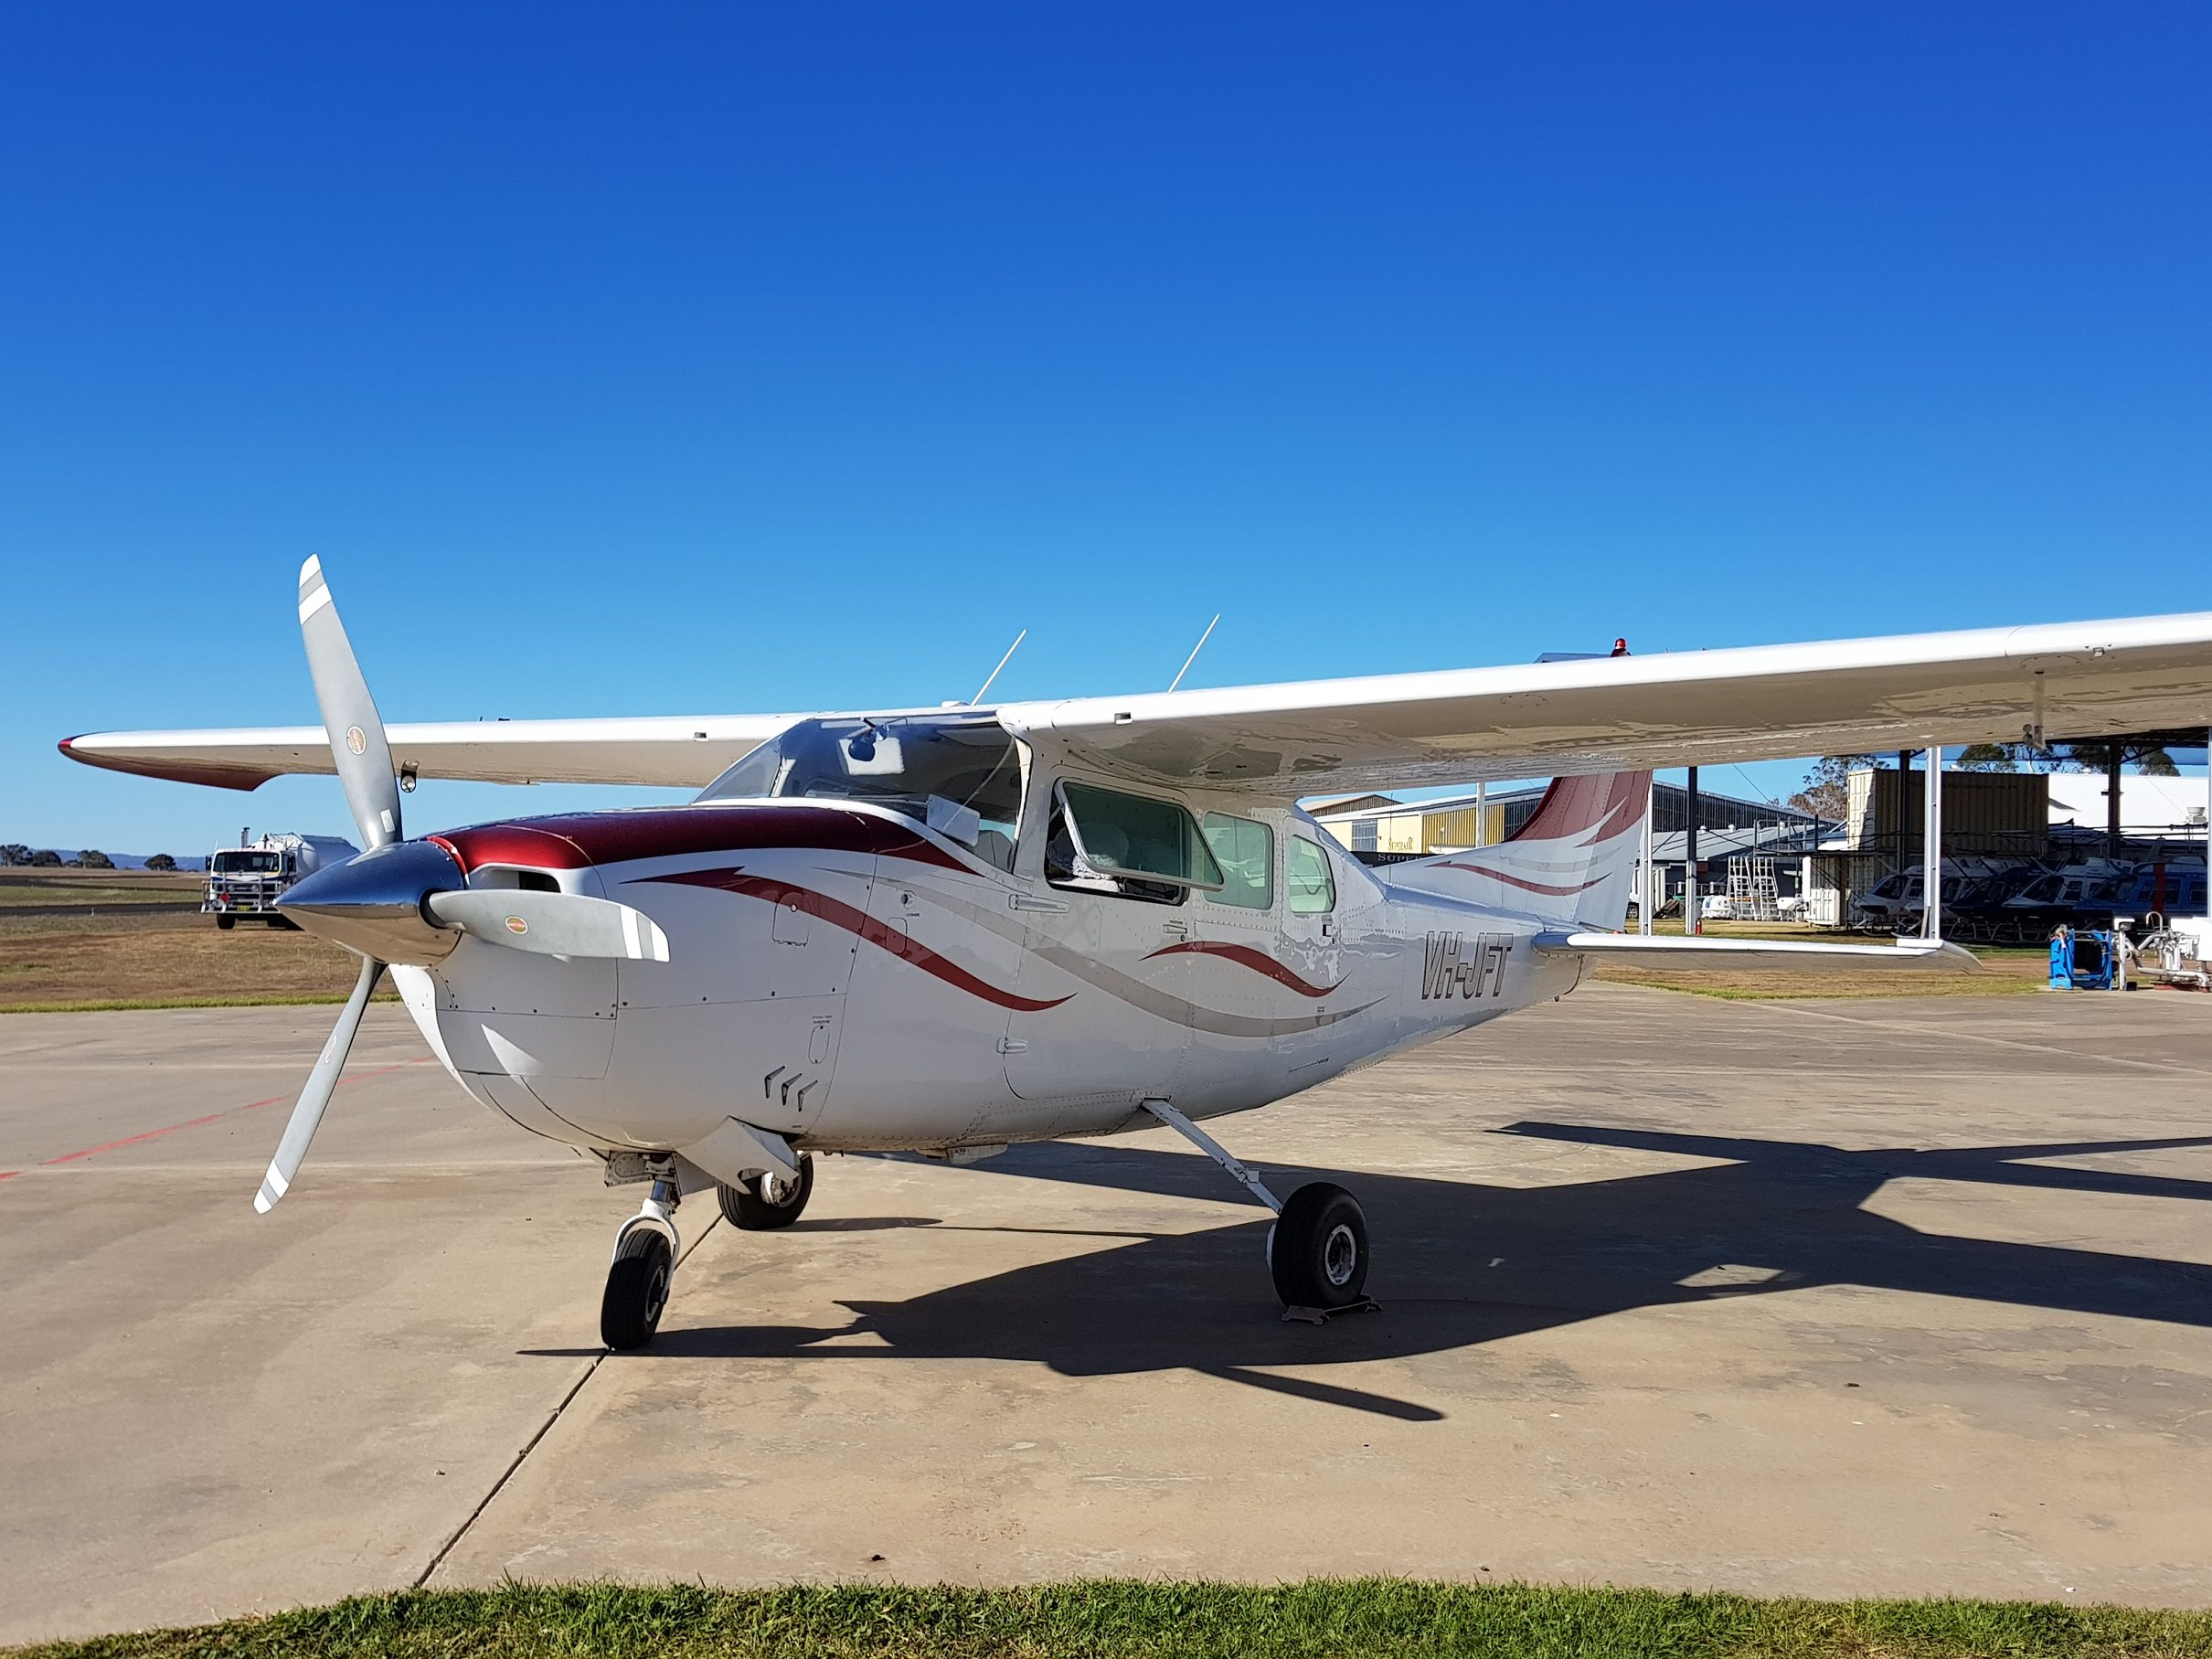 1968 Cessna 210 J Model (current image)